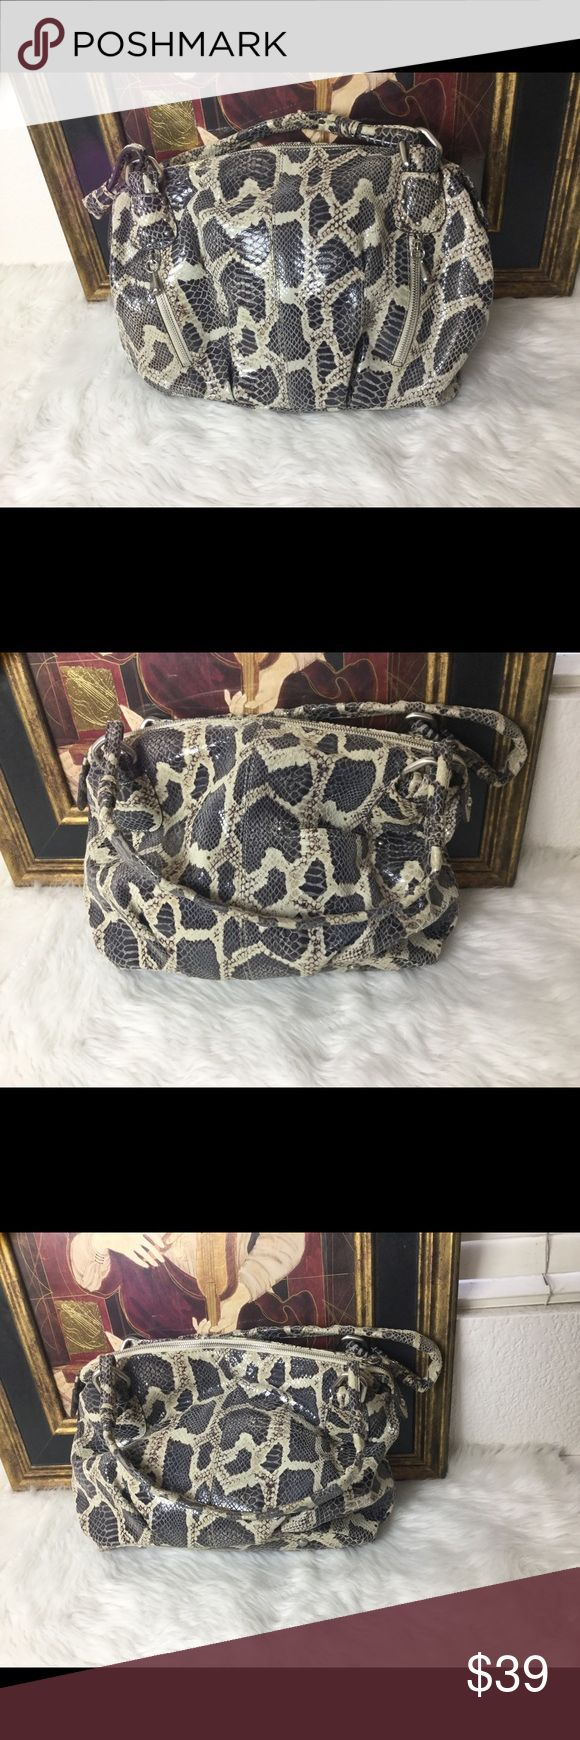 B Makowsky Animal Print Leather Handbag. B Makowsky Animal Print Leather Handbag.  Measures 15x10. In great shape! B Makowsky Bags Shoulder Bags